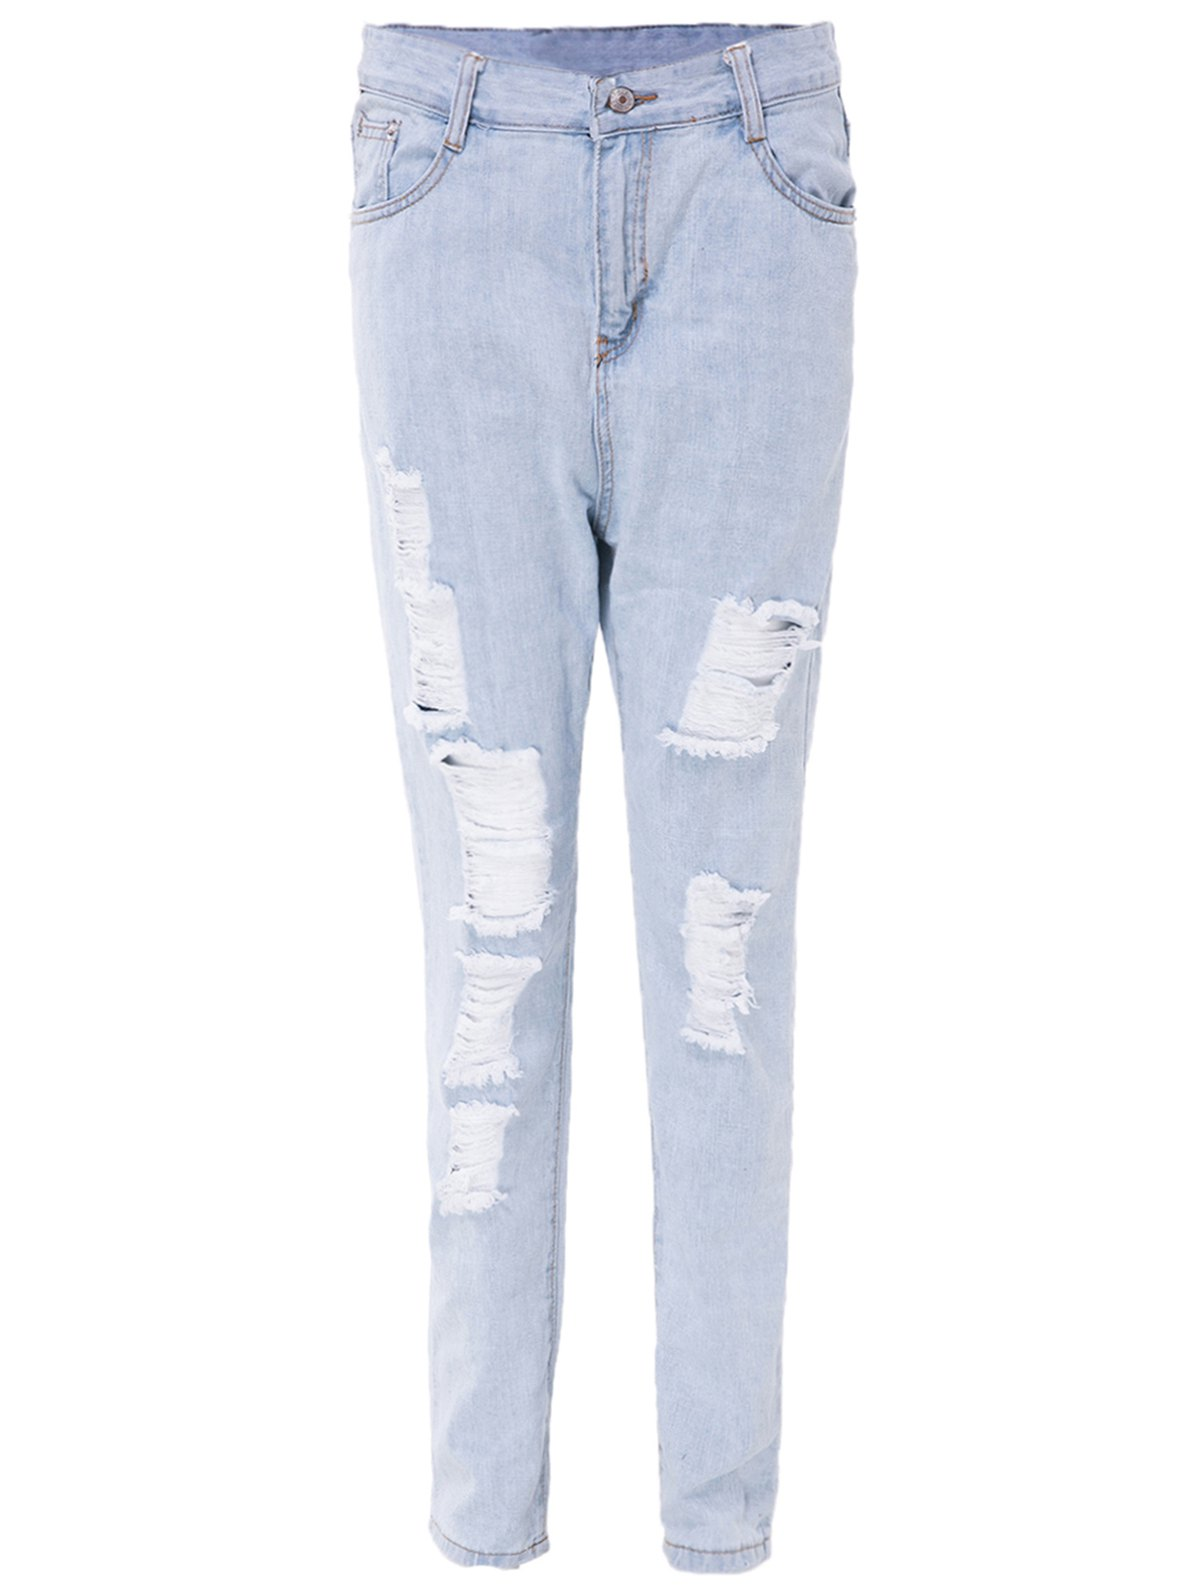 Stylish High-Waisted Ripped Slimming Frayed Women's Ninth Jeans - LIGHT BLUE M